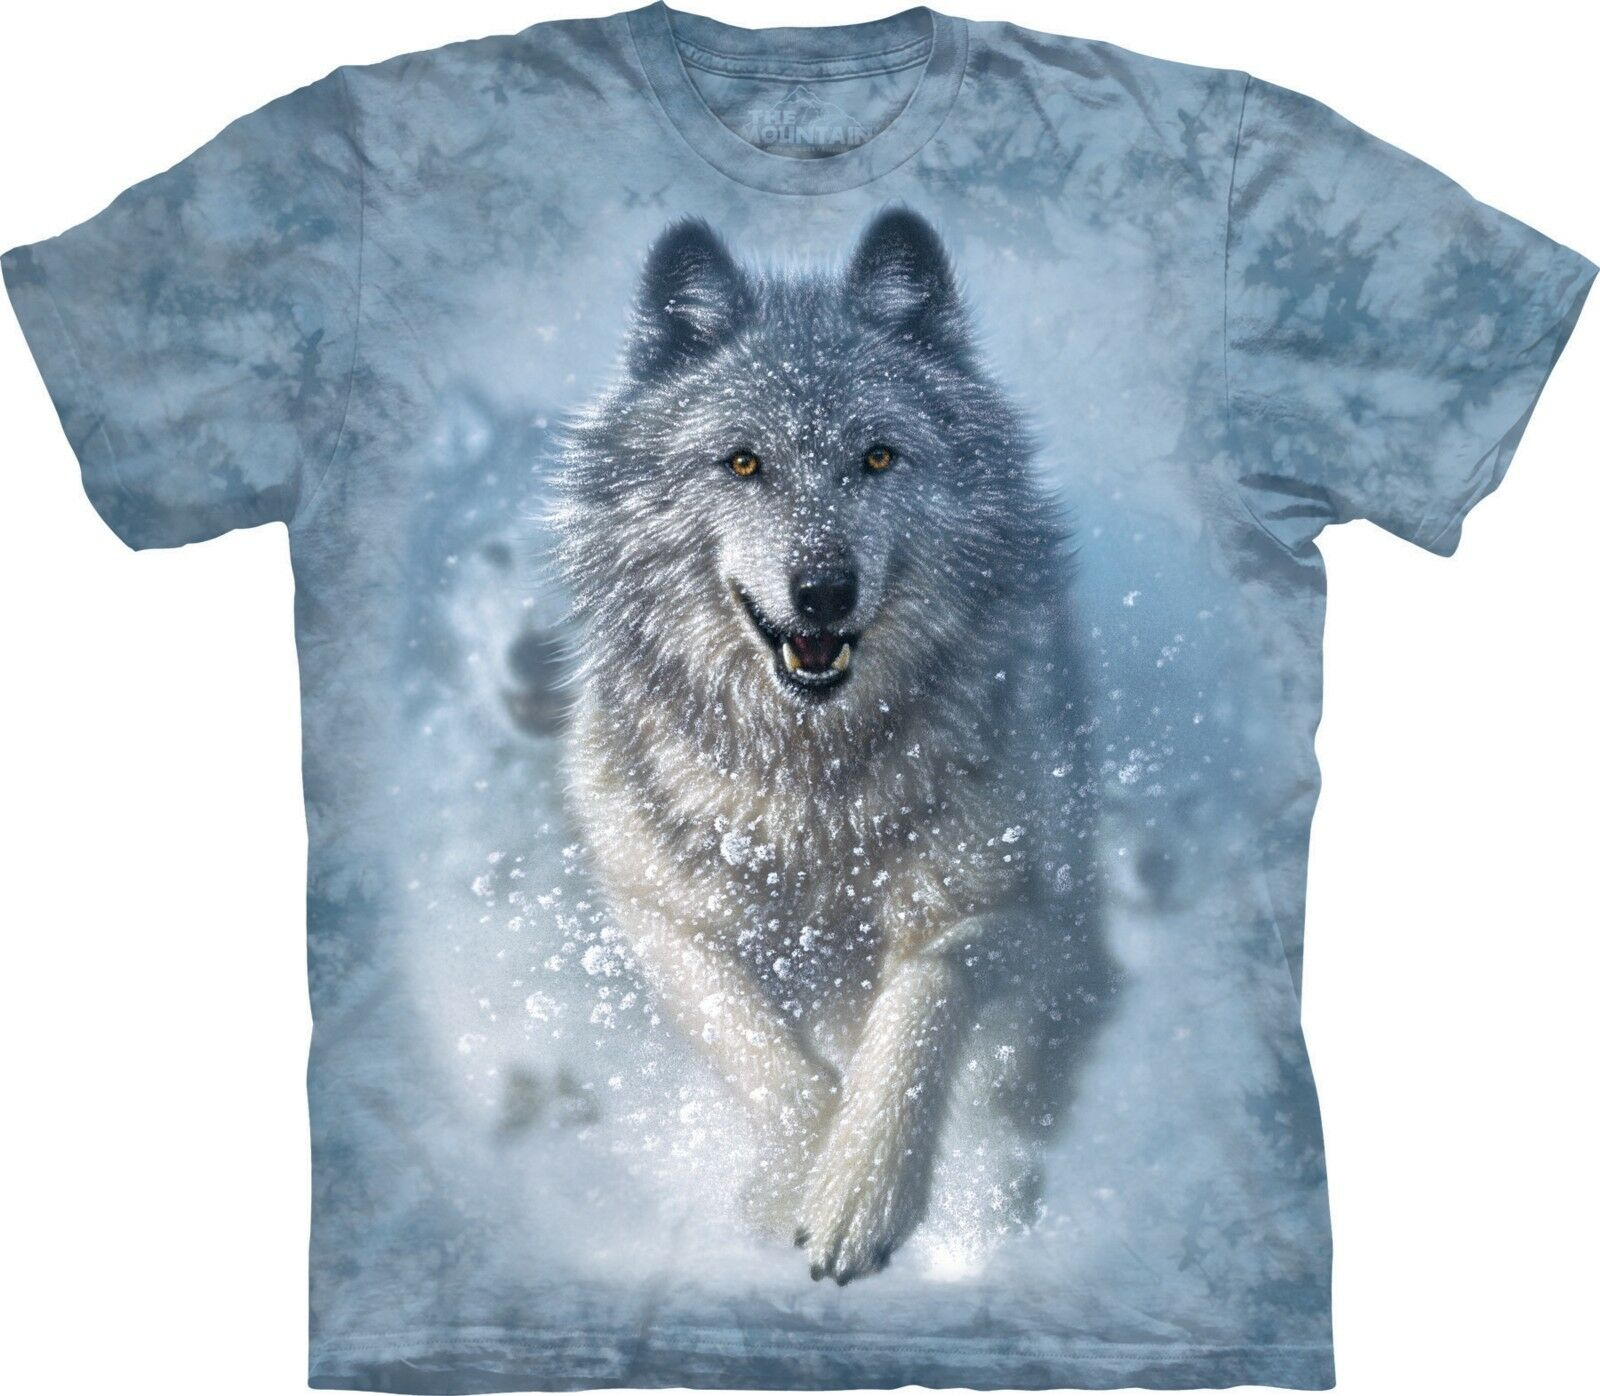 Snow Plow Wolf T Shirt Adult Unisex The Mountain